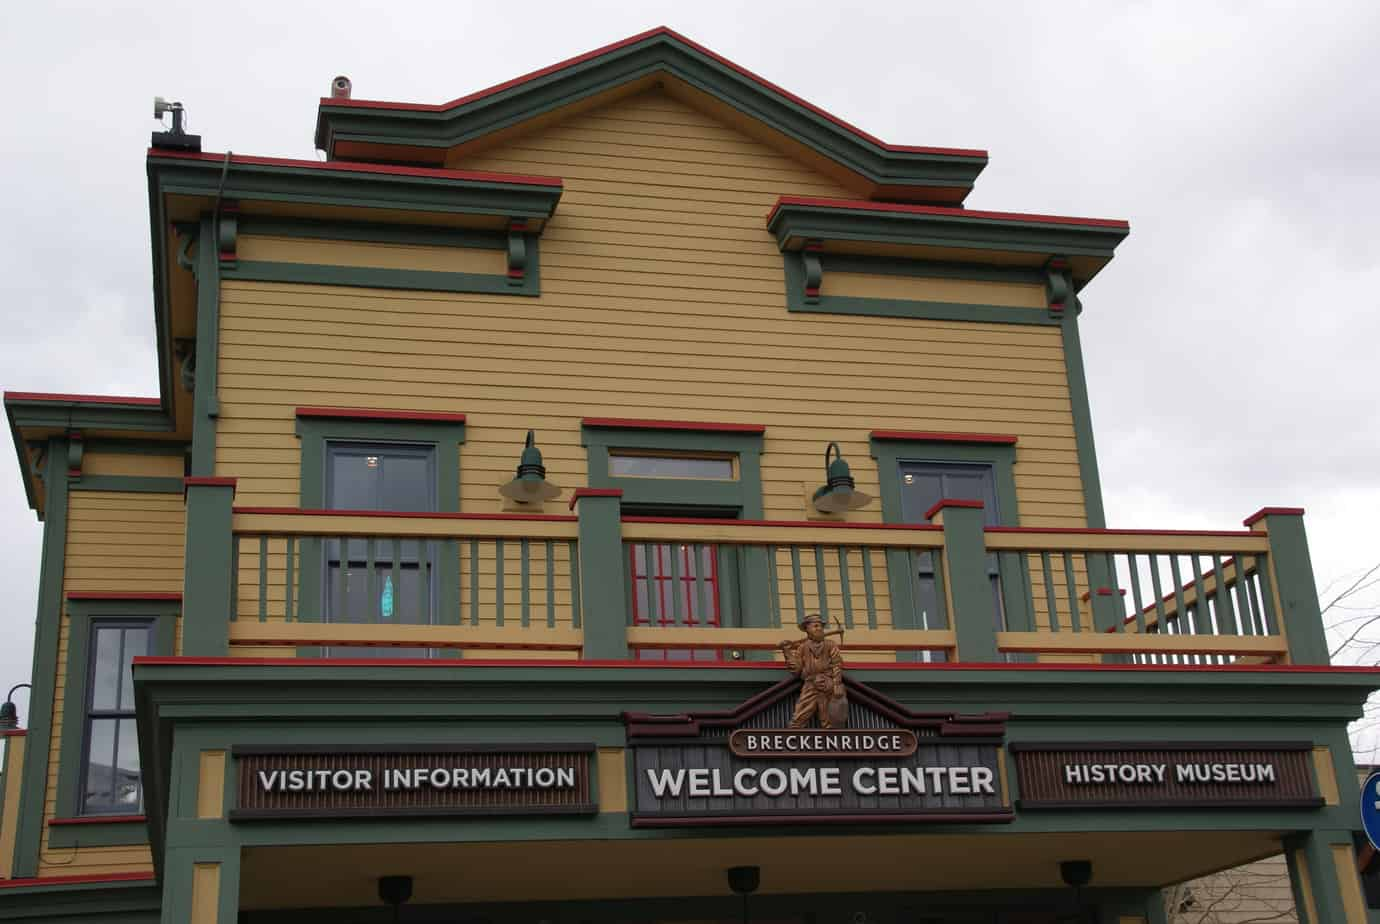 Breckenridge History Museum and Welcome Center